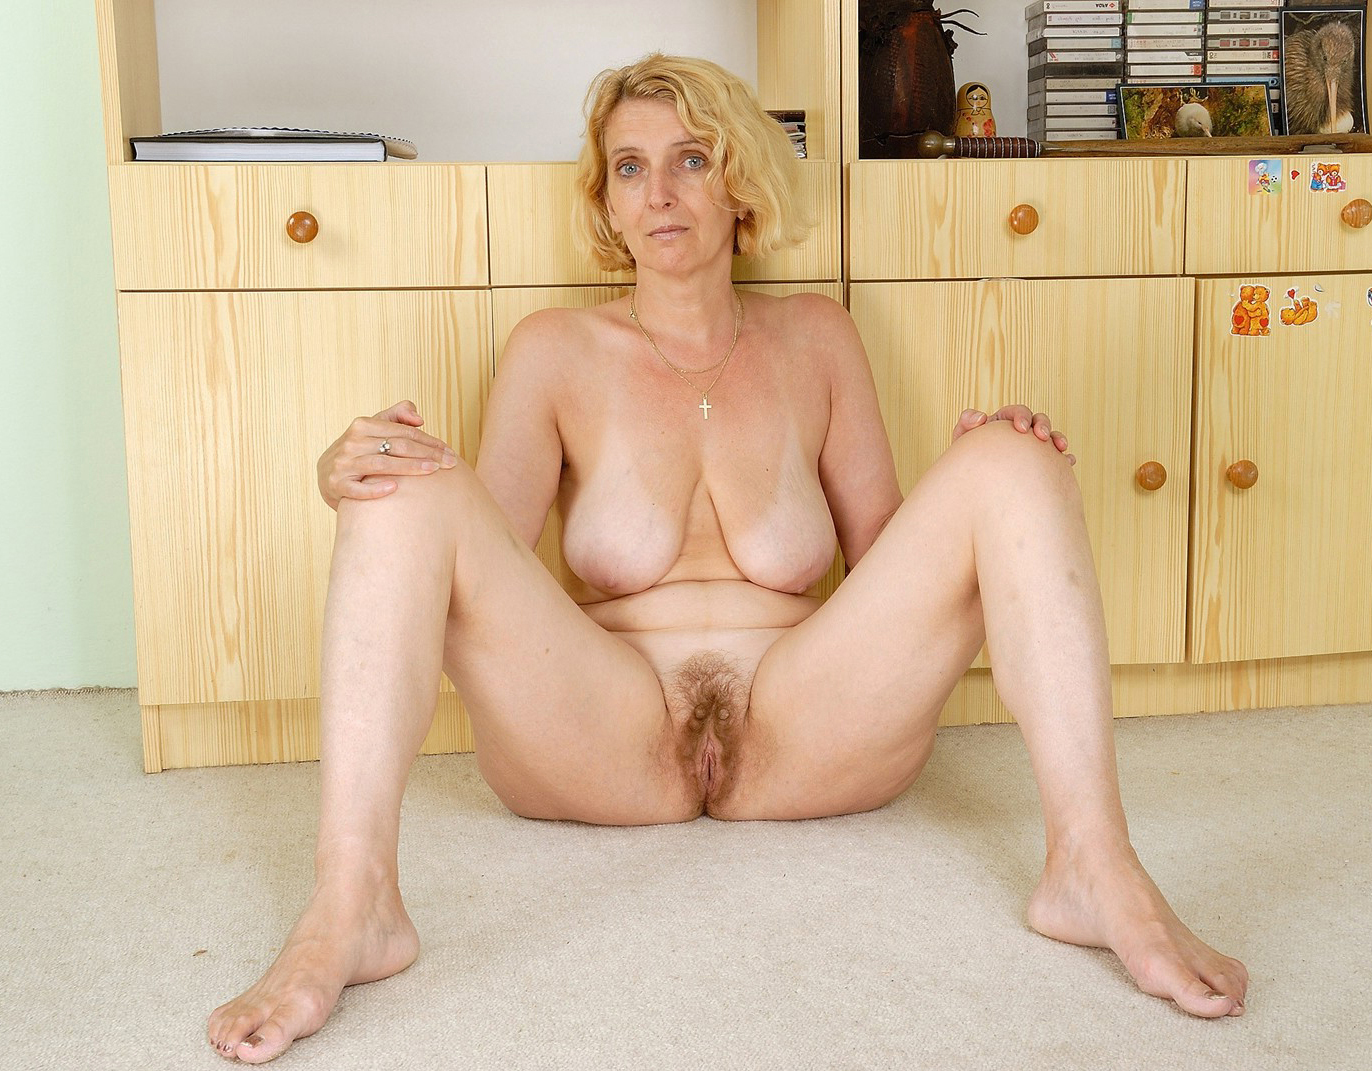 Remarkable, mom nude blonde mature phrase Prompt, where